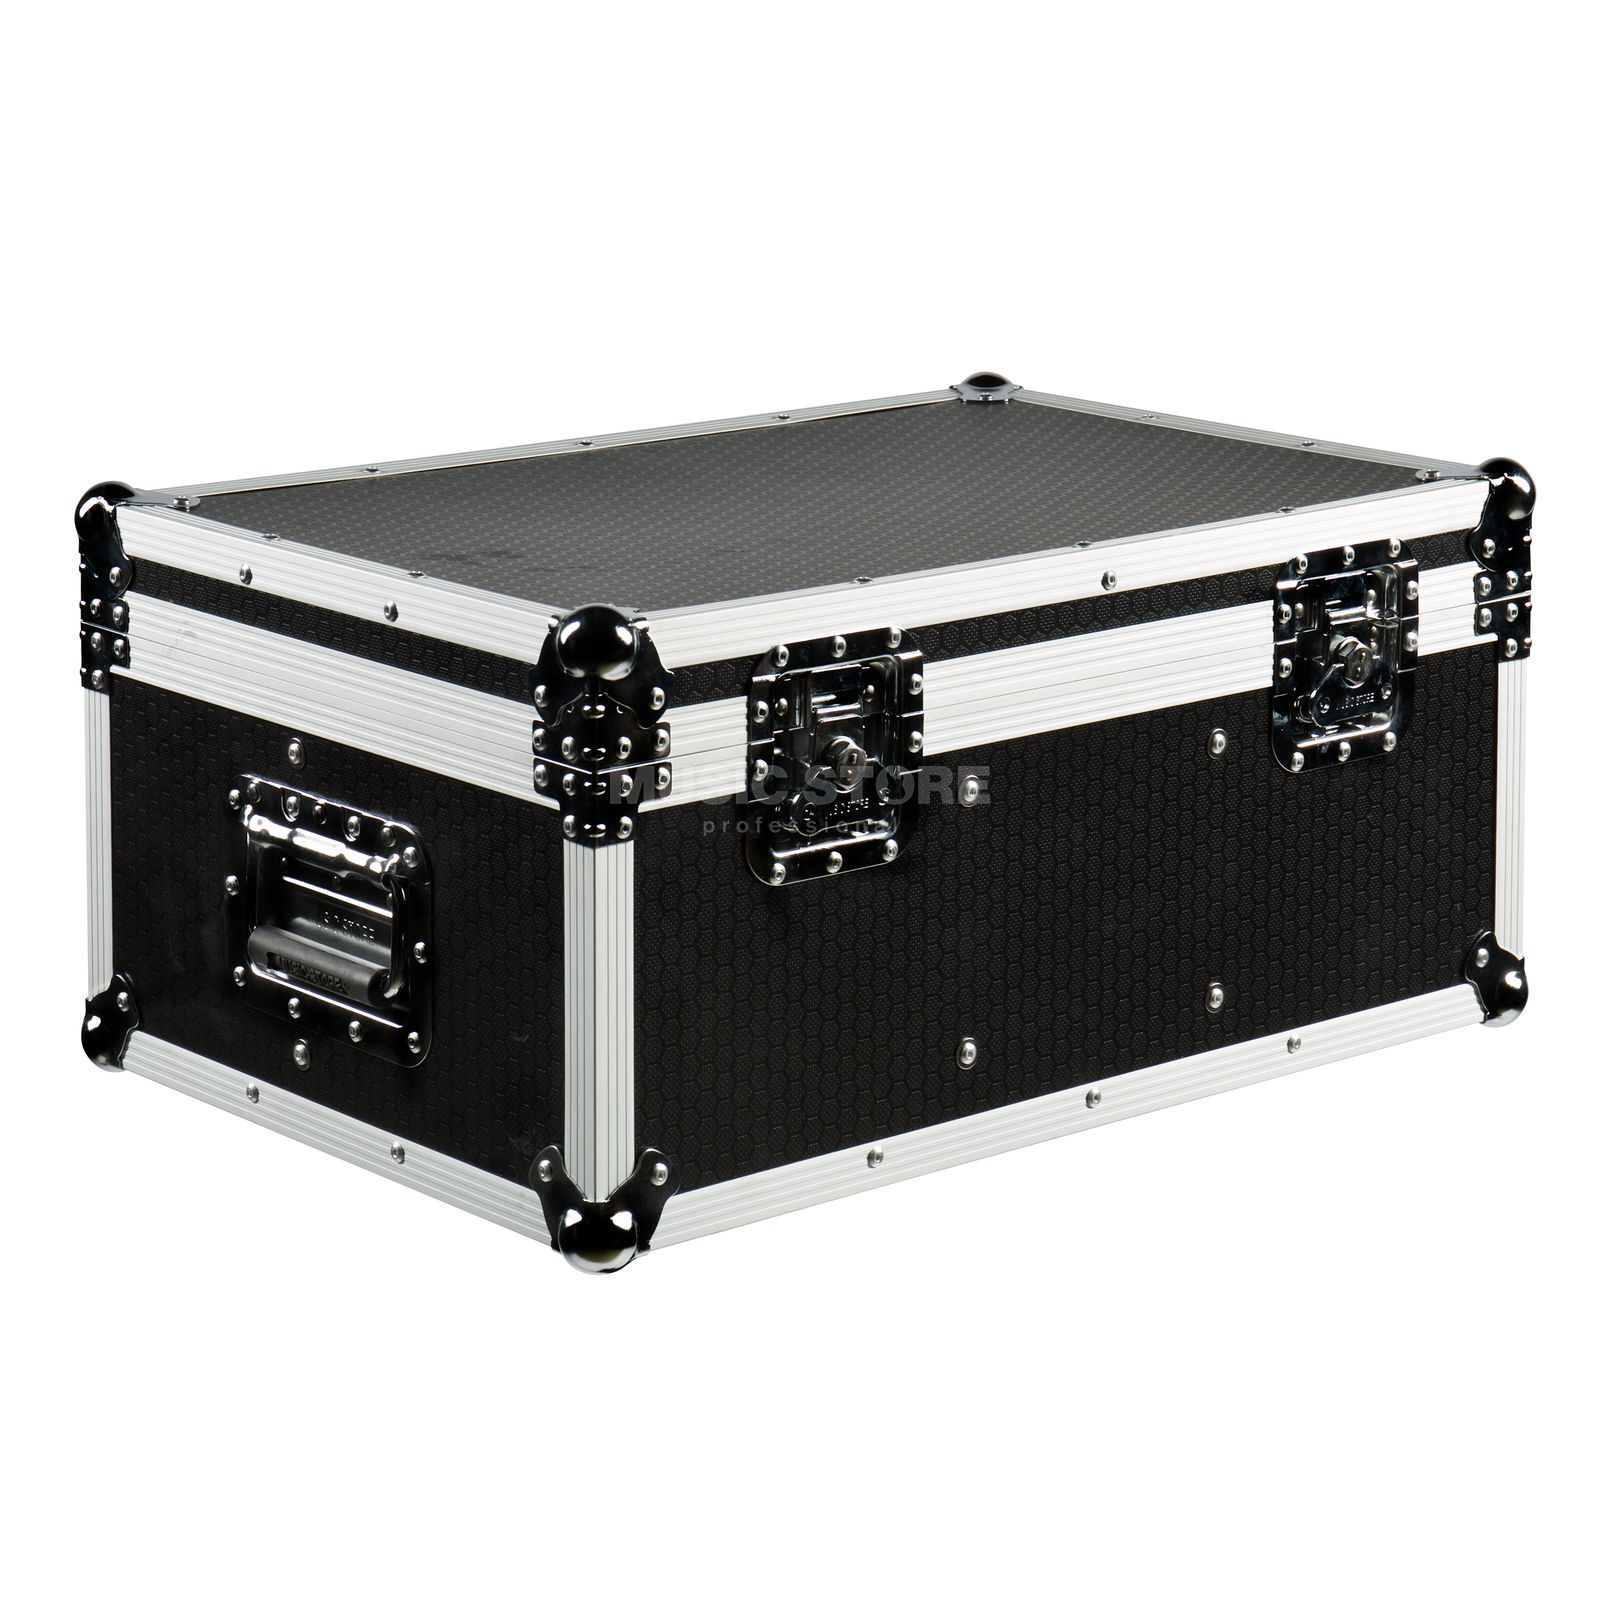 lightmaXX TOUR CASE 6x LED MINI PAR TRI + QUAD Product Image